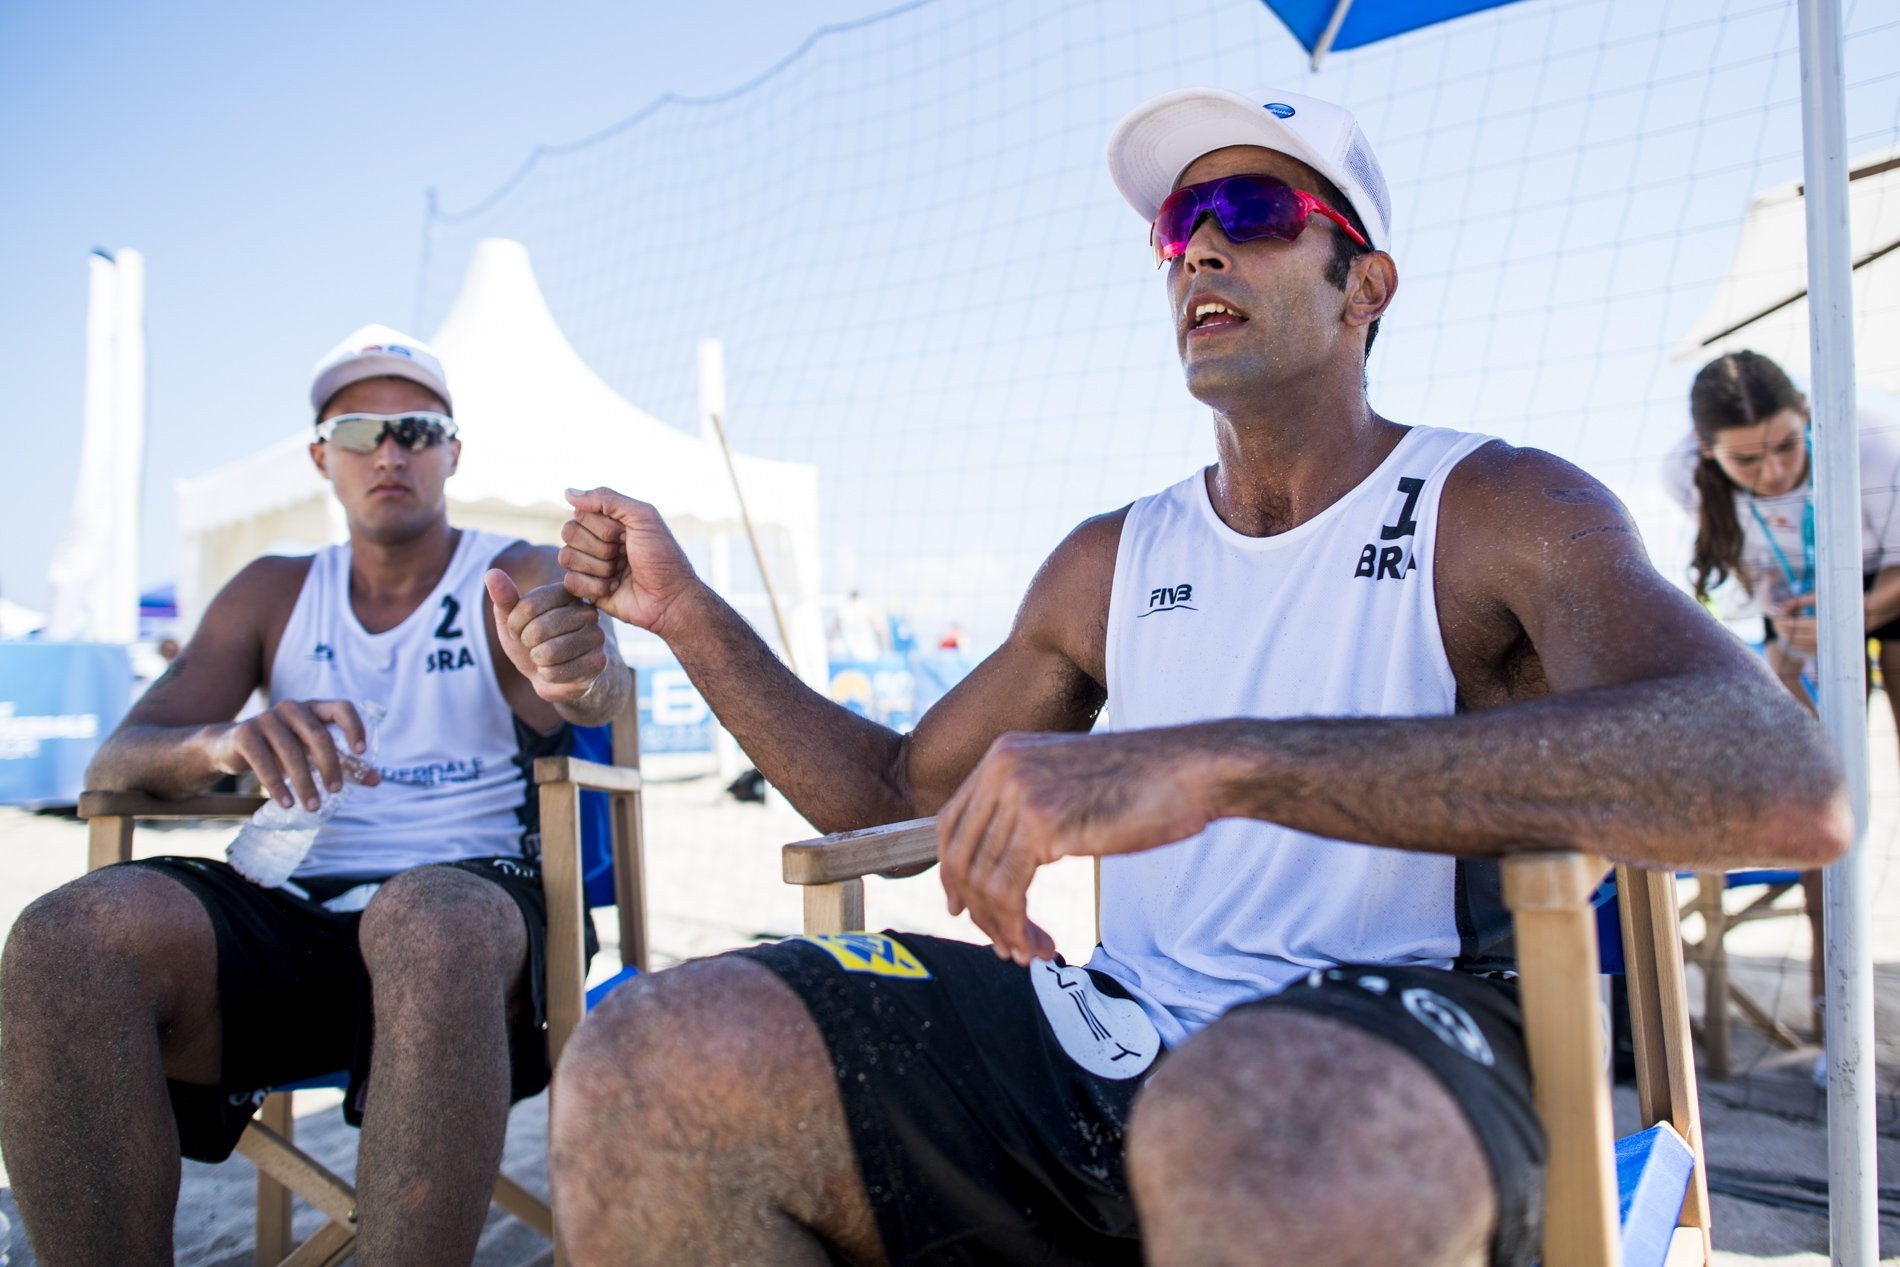 George Wanderley (left) and Pedro Solberg are playing on their first Beach Major Series event together